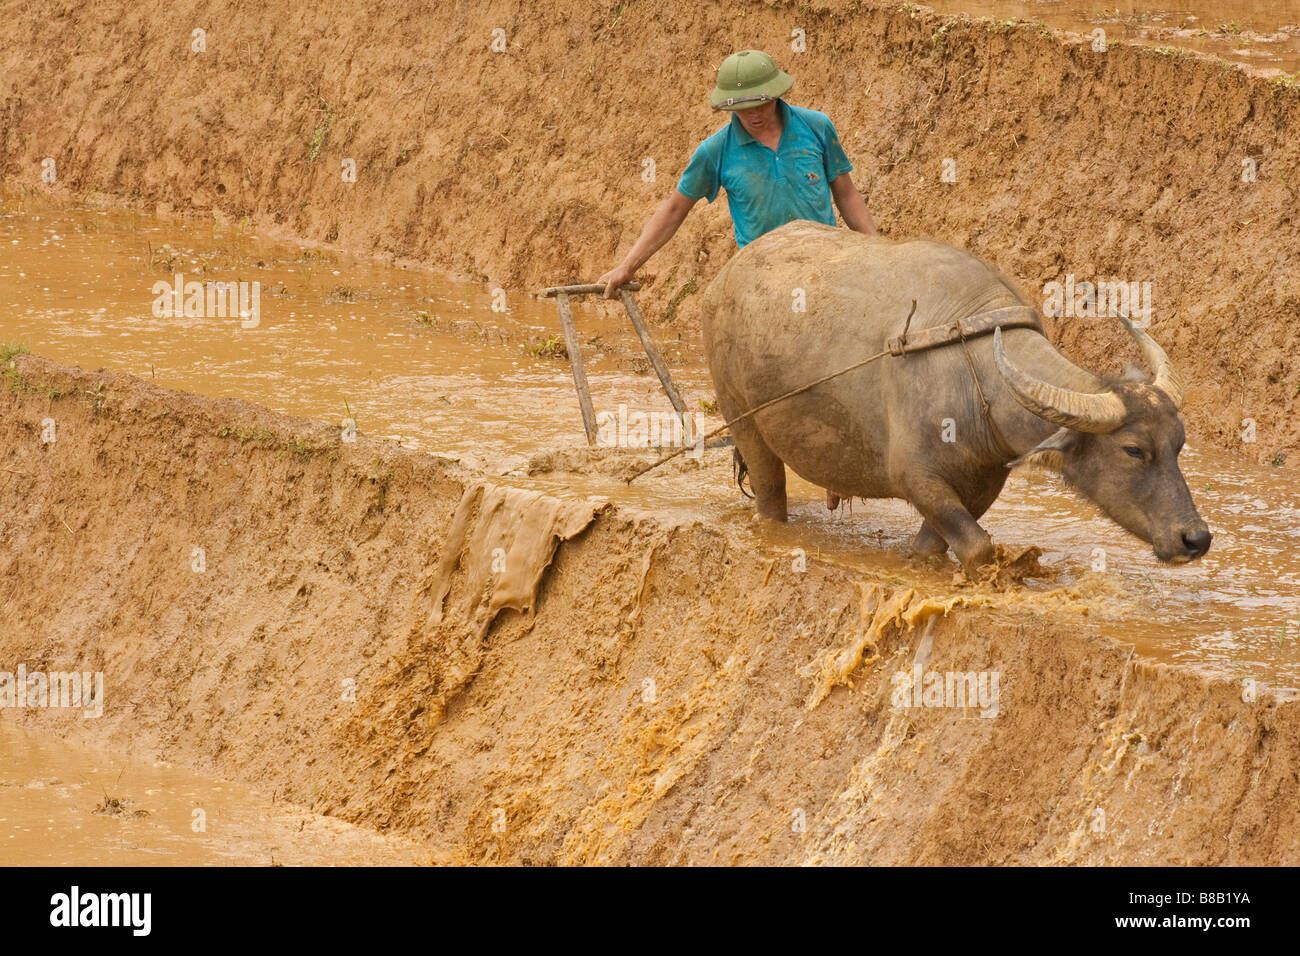 Traditional Vietnam and uncultivated rice terraces with buffalo and man ploughing the muddy wet rice terraces ready - Stock Image